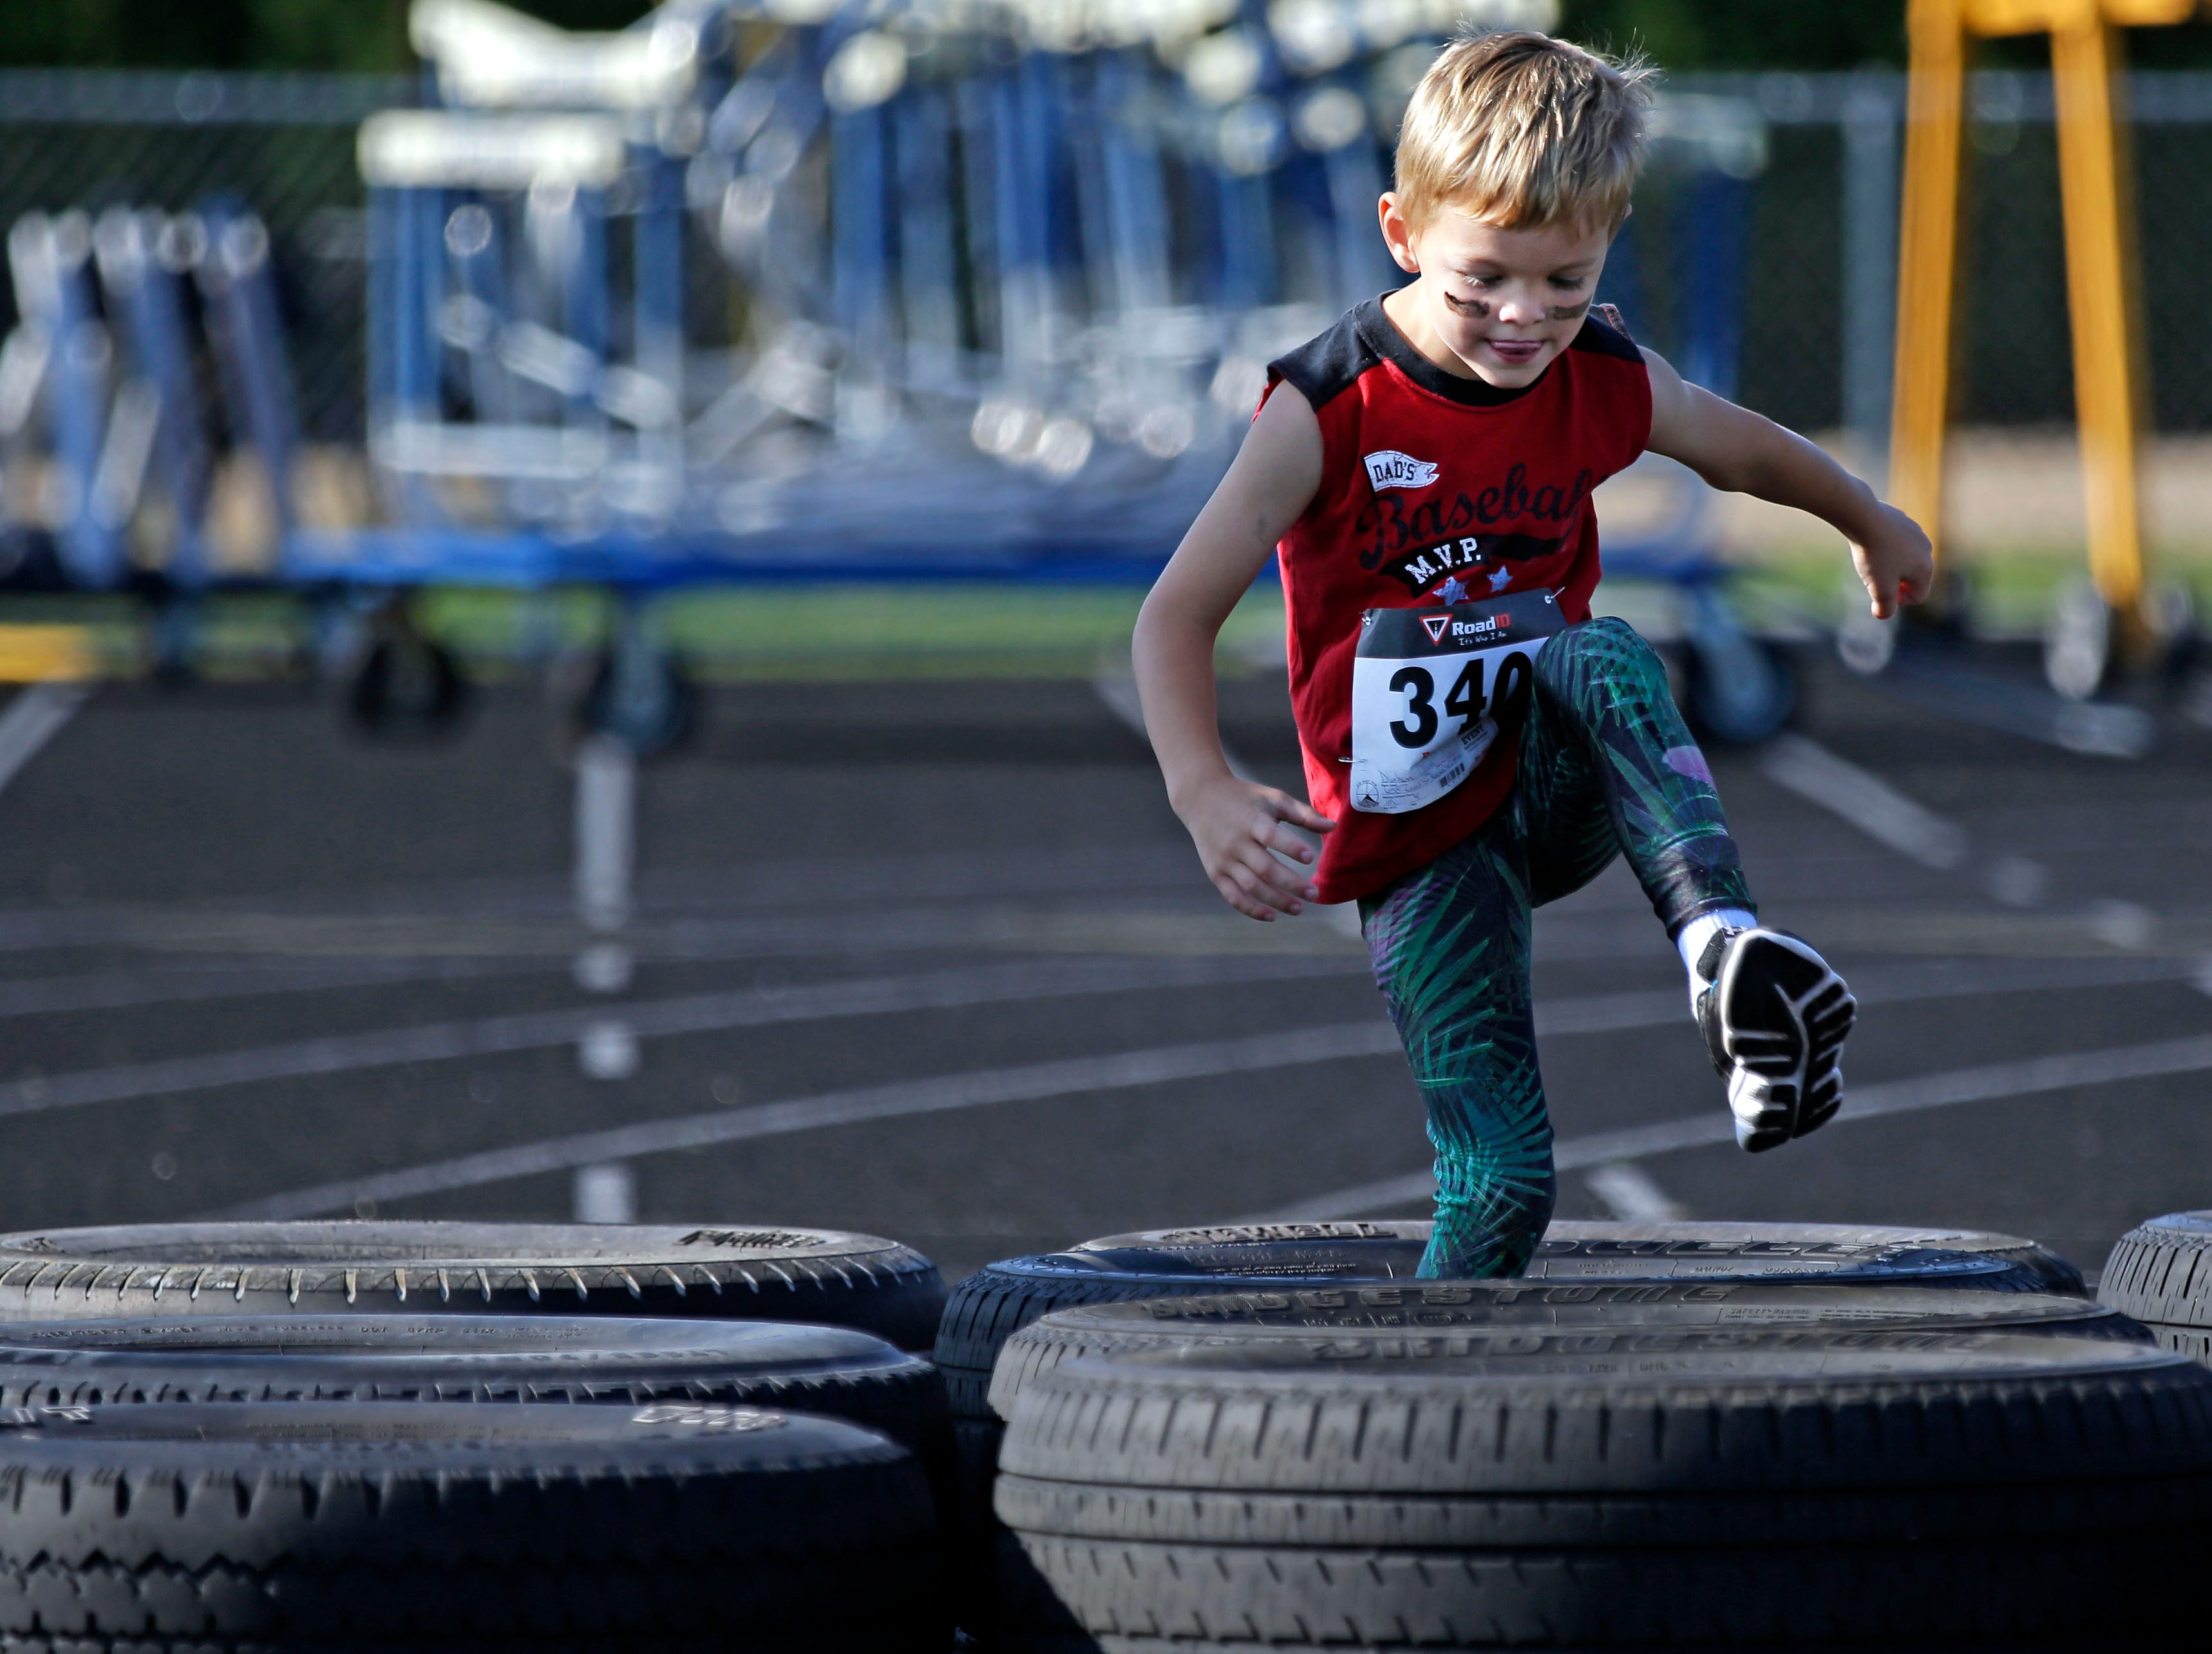 Quinn Dunham of Neenah steps through a tire obstacle as Cole's Cancer Crusade, an obstacle course for kids takes place Saturday, July 28, 2018, at Appleton East High School in Appleton, Wis. The event raised funds for the Snowdrop Foundation Wisconsin Chapter.Ron Page/USA TODAY NETWORK-Wisconsin